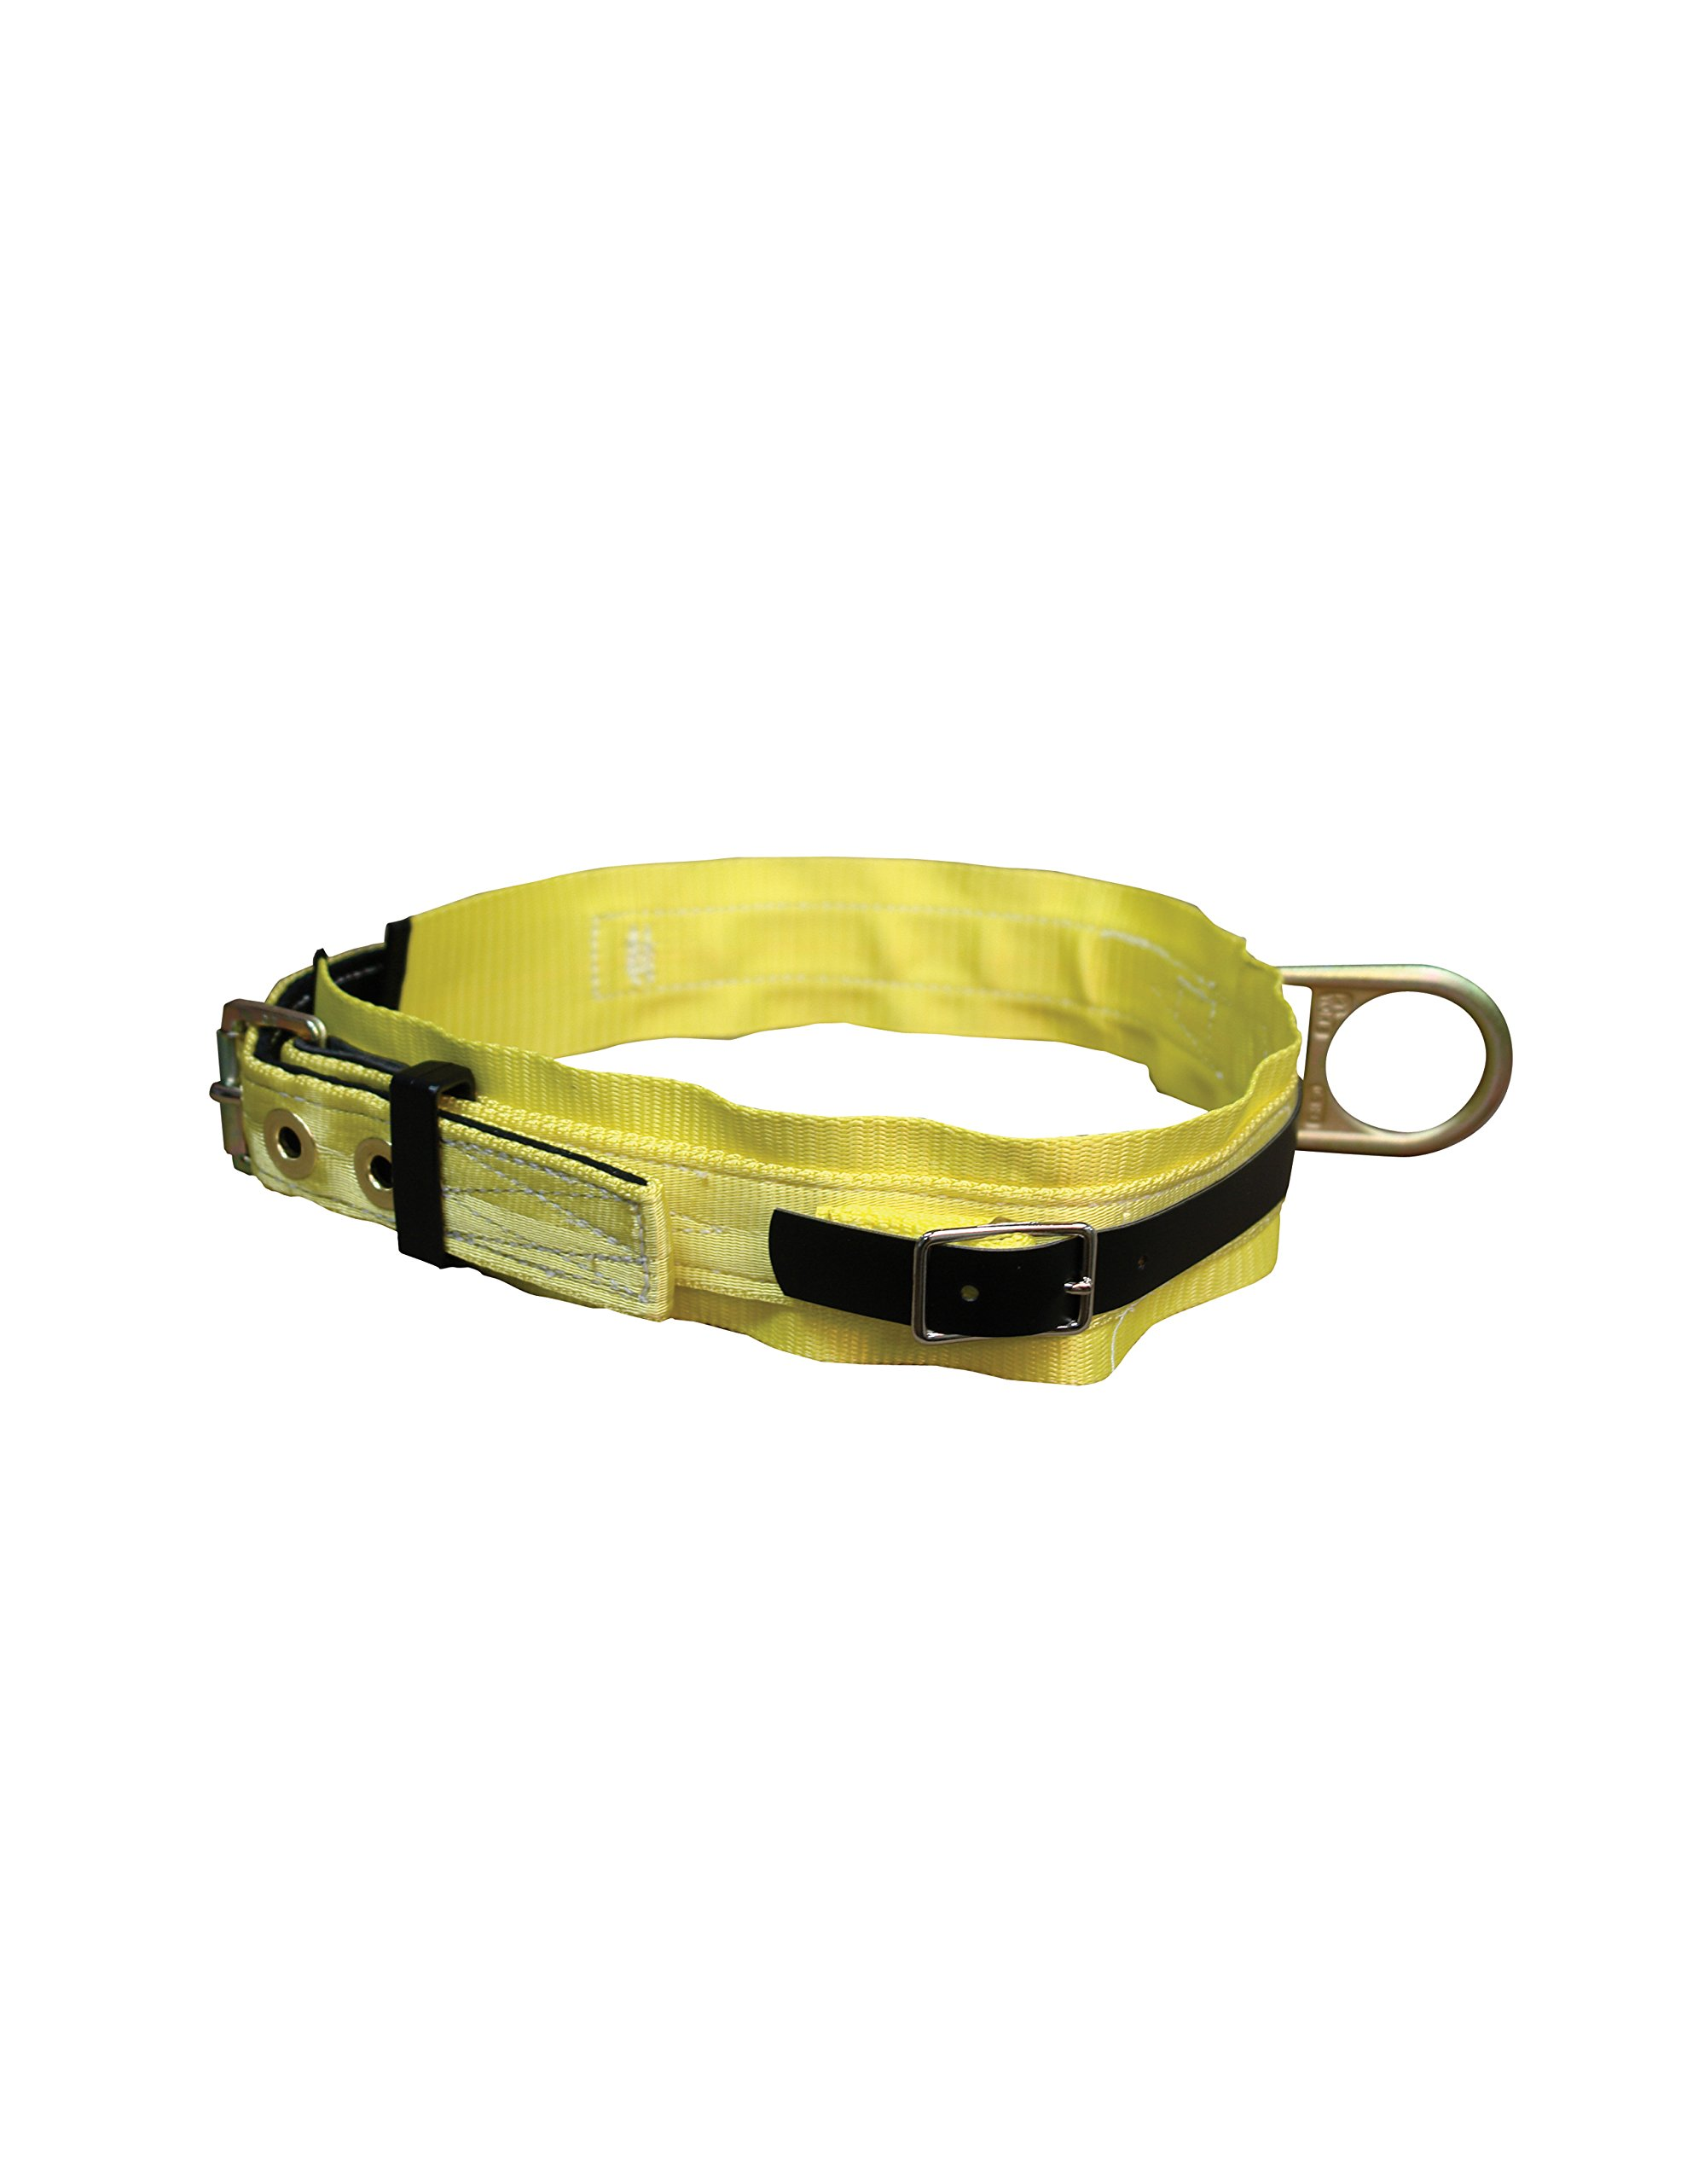 Elk River 03193 Nylon and Polyester Web Reinforced Miner's Body Work Belt with and 3'' Backpad, Large